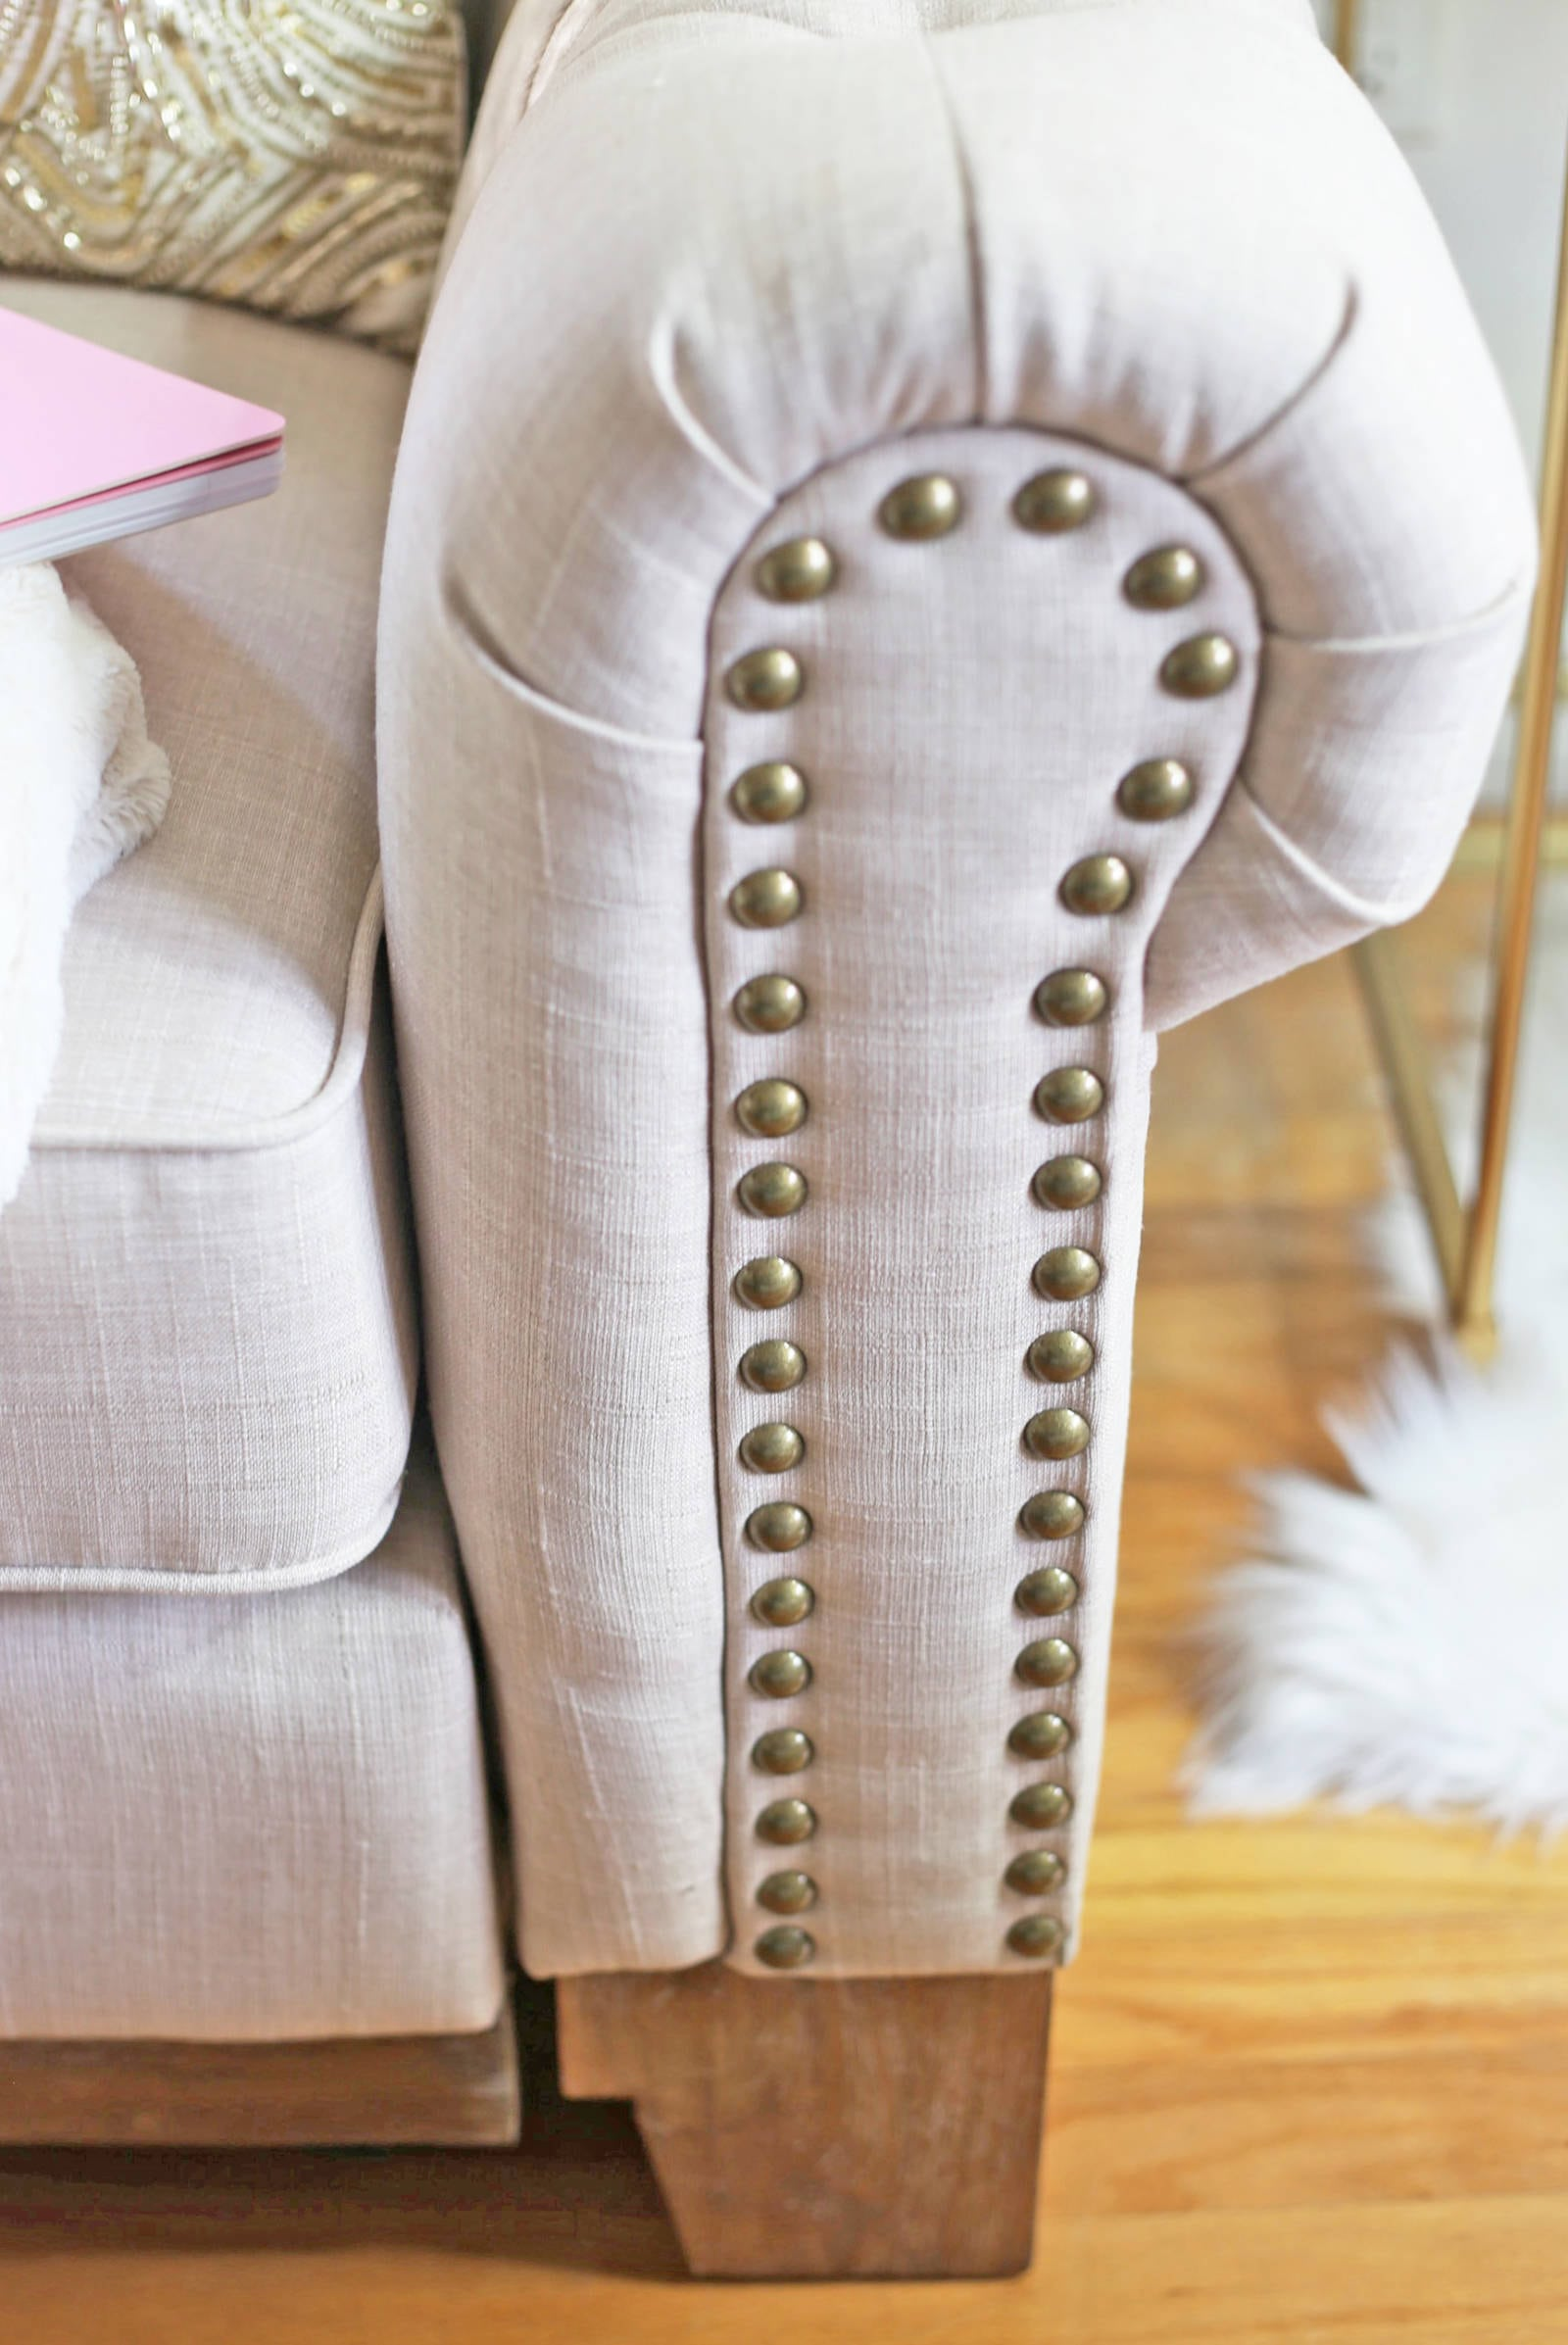 Exceptional Blogger Mash Elle Styles An Affordable Cream Tufted Sofa With Gold Details  From Kohls Home Office ...